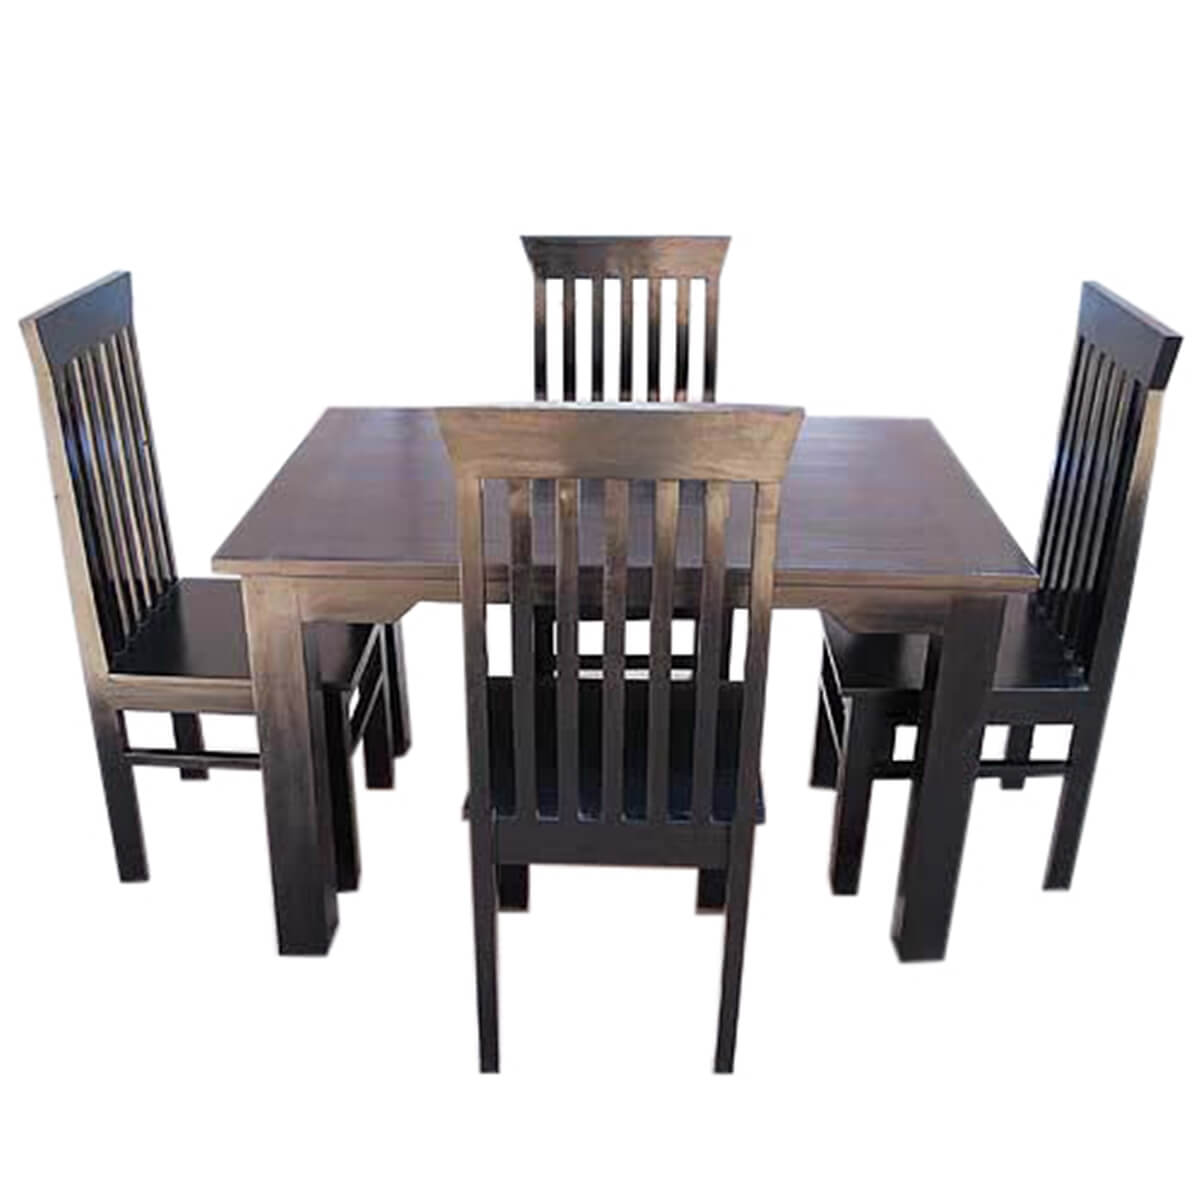 Contemporary lincoln kitchen dining room table chairs set - Dining room table contemporary ...